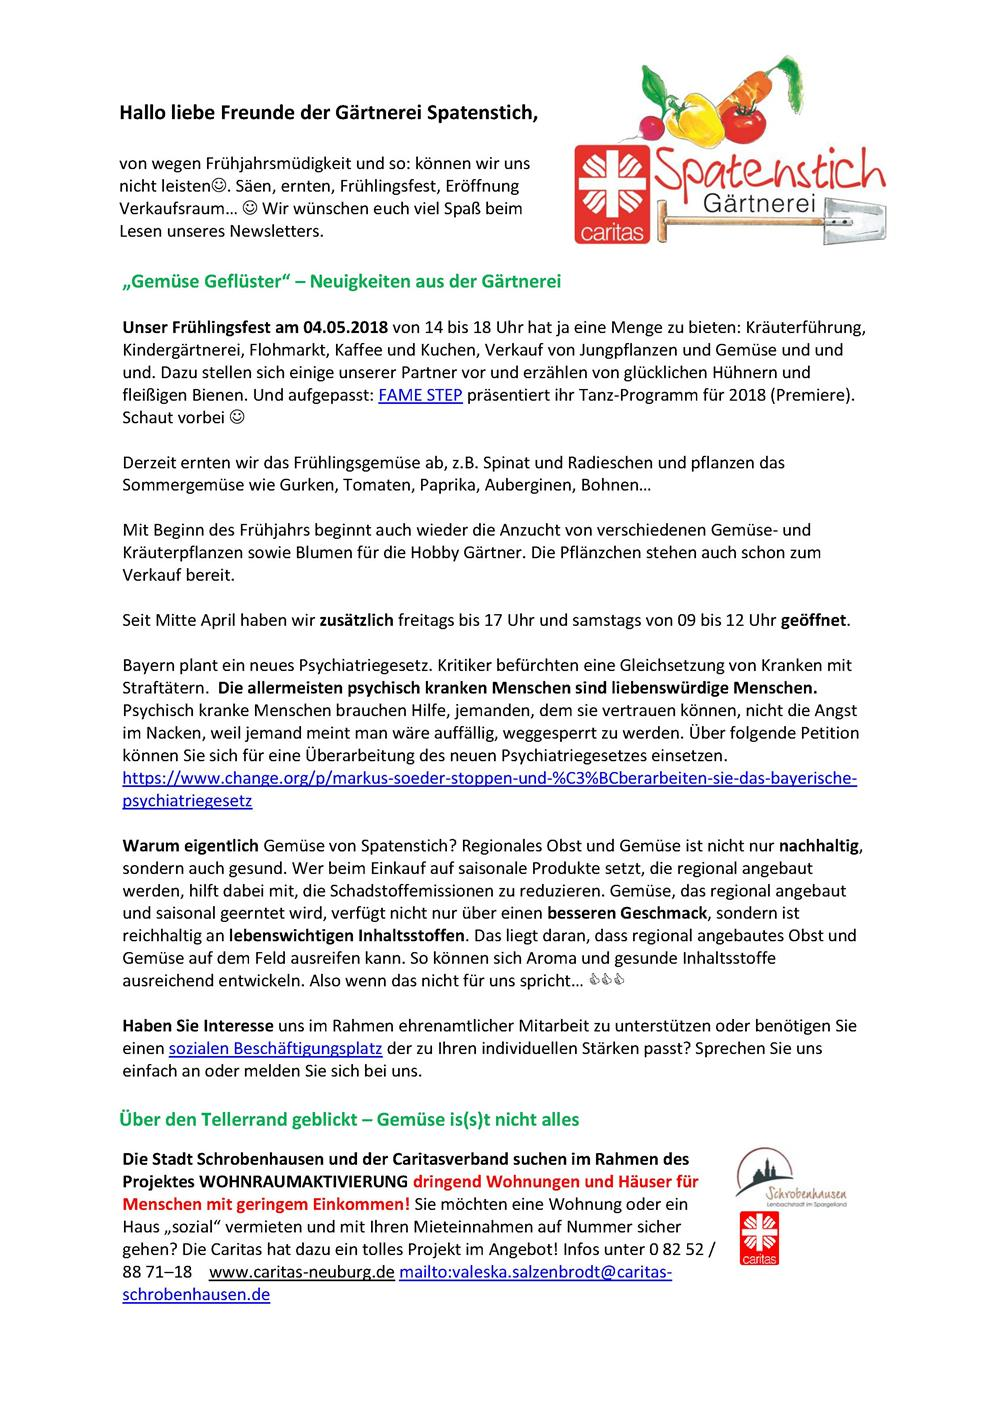 Newsletter04-18 Gärtnerei Spatenstich